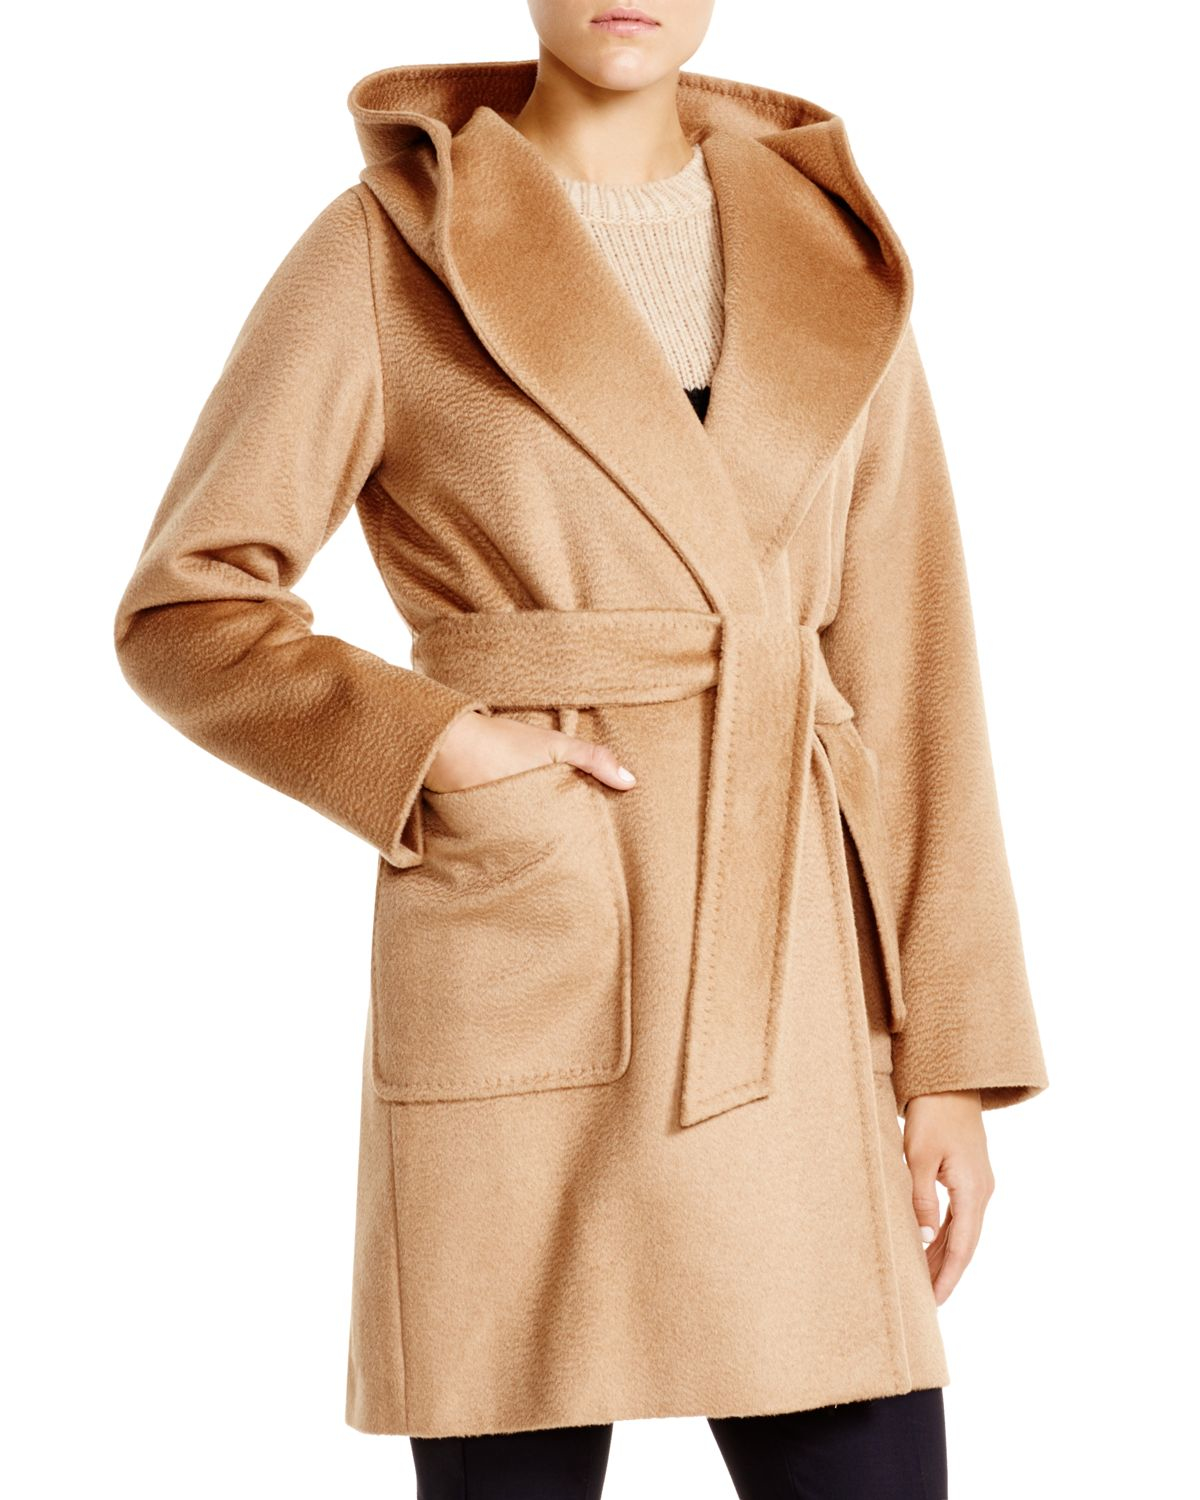 d5562b0e34084 Lyst - Max Mara Rialto Coat in Natural